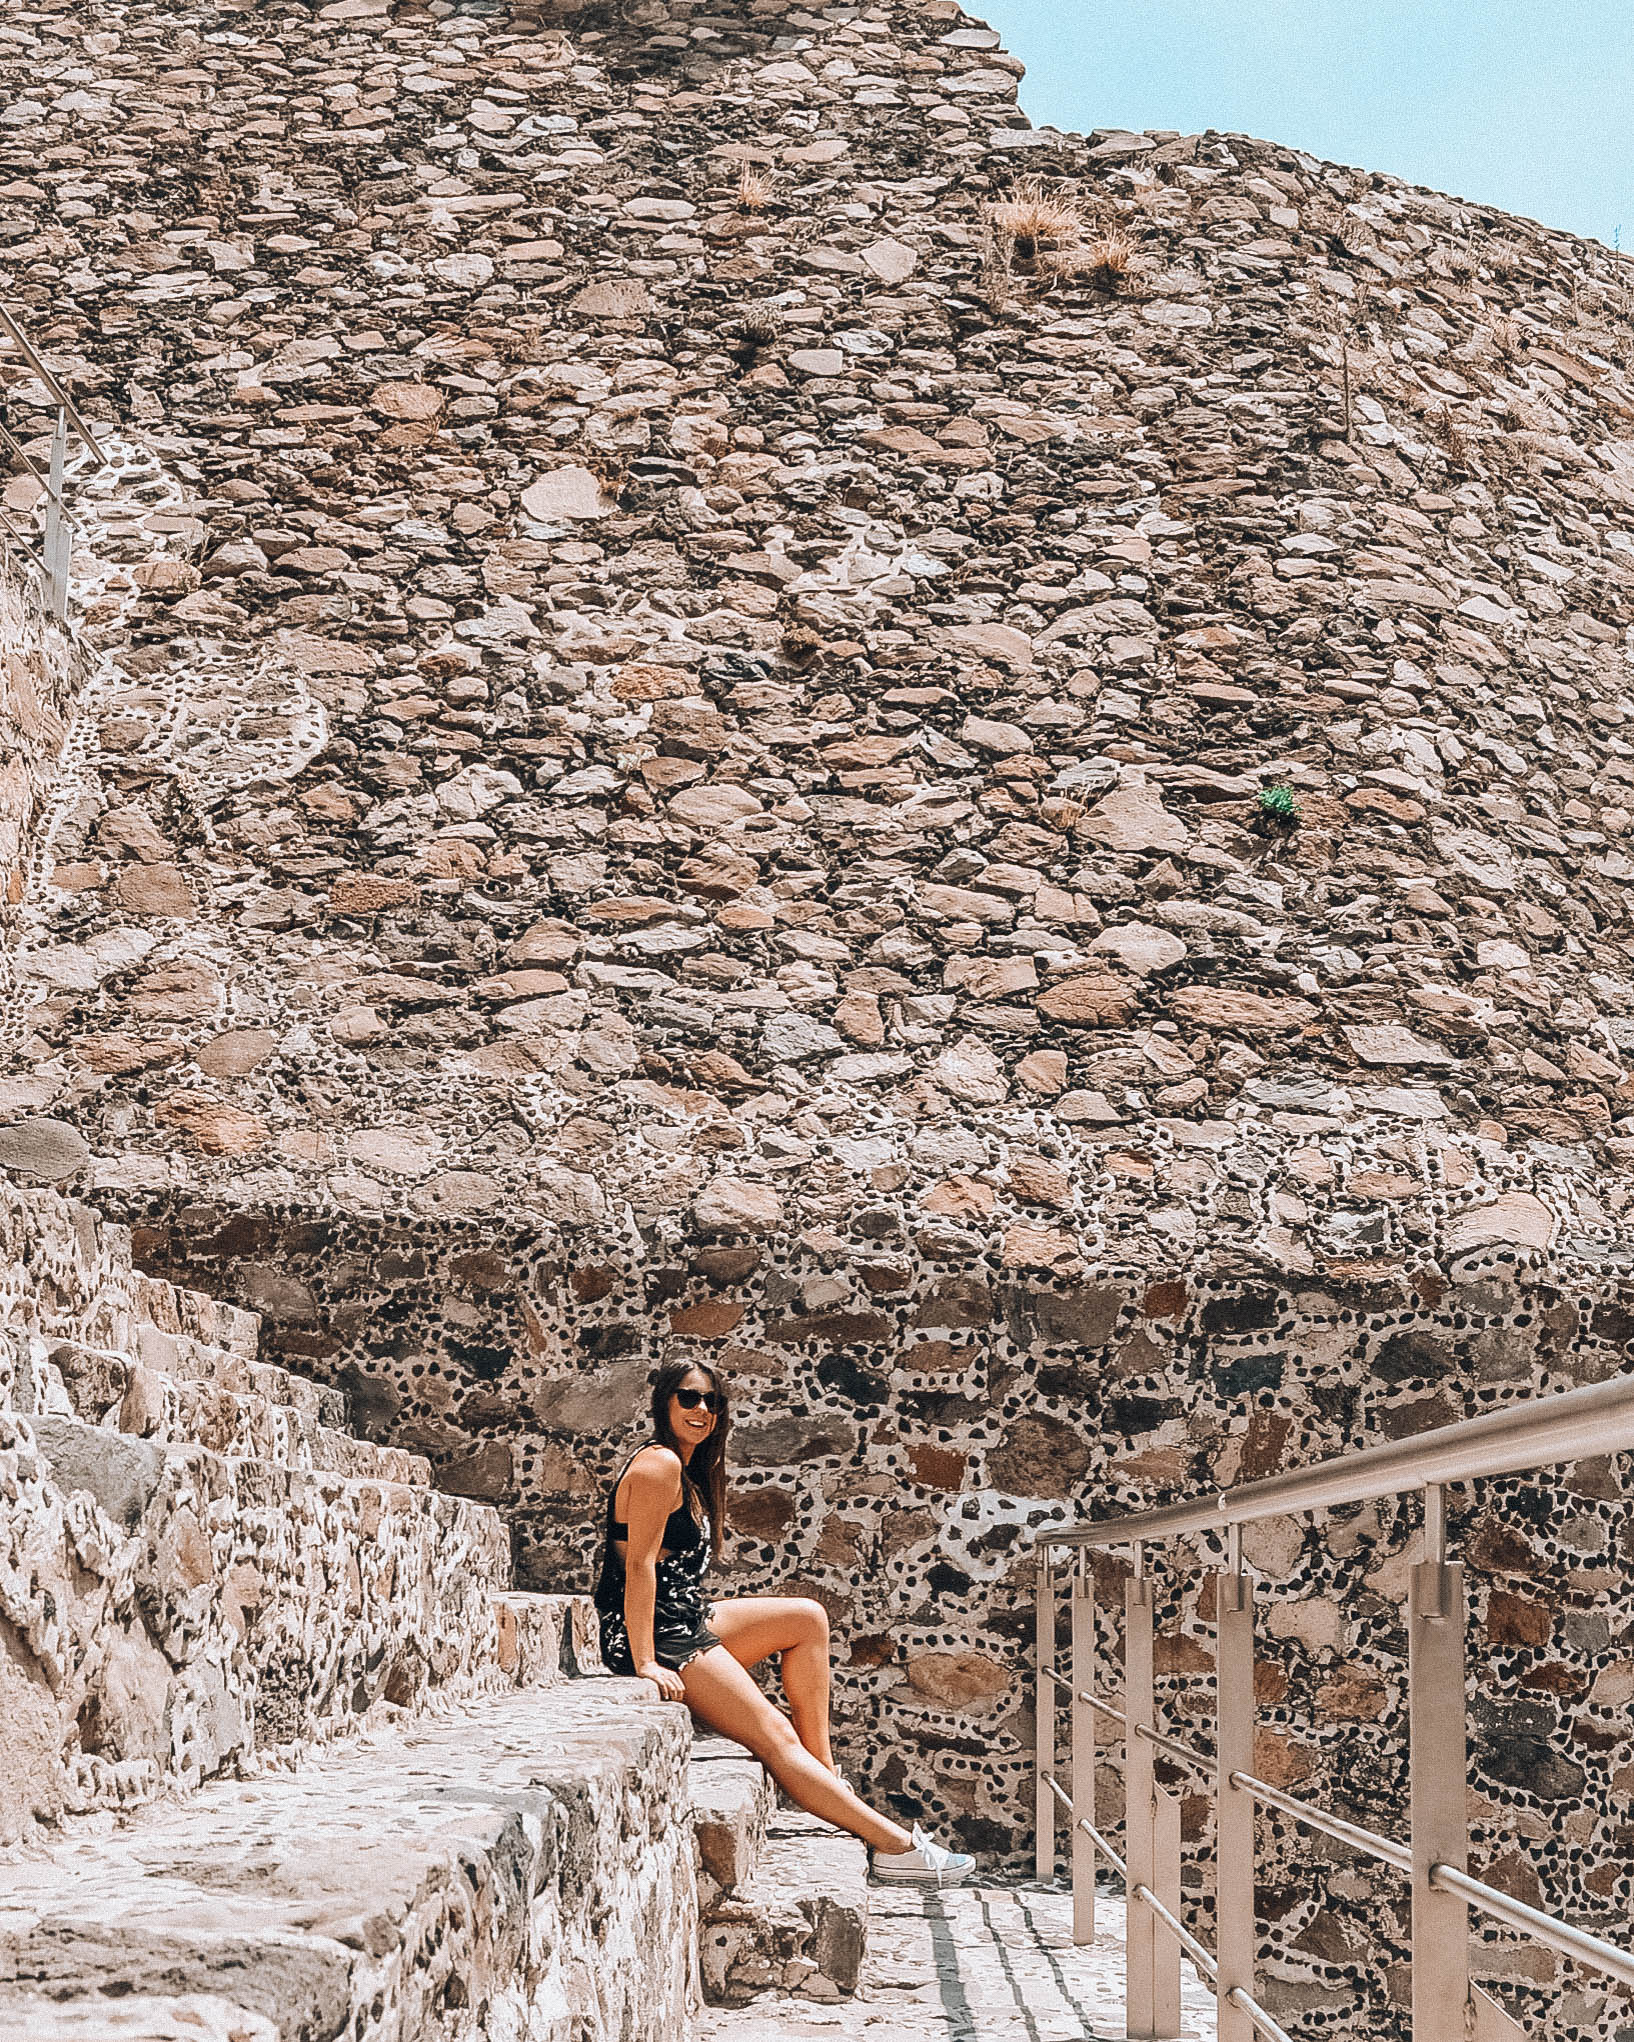 Teotihuacan Pyramids: 6 Fun things to do on your trip to Mexico City! You don't want to miss these on your trip to CDMX. goseekexplore.com